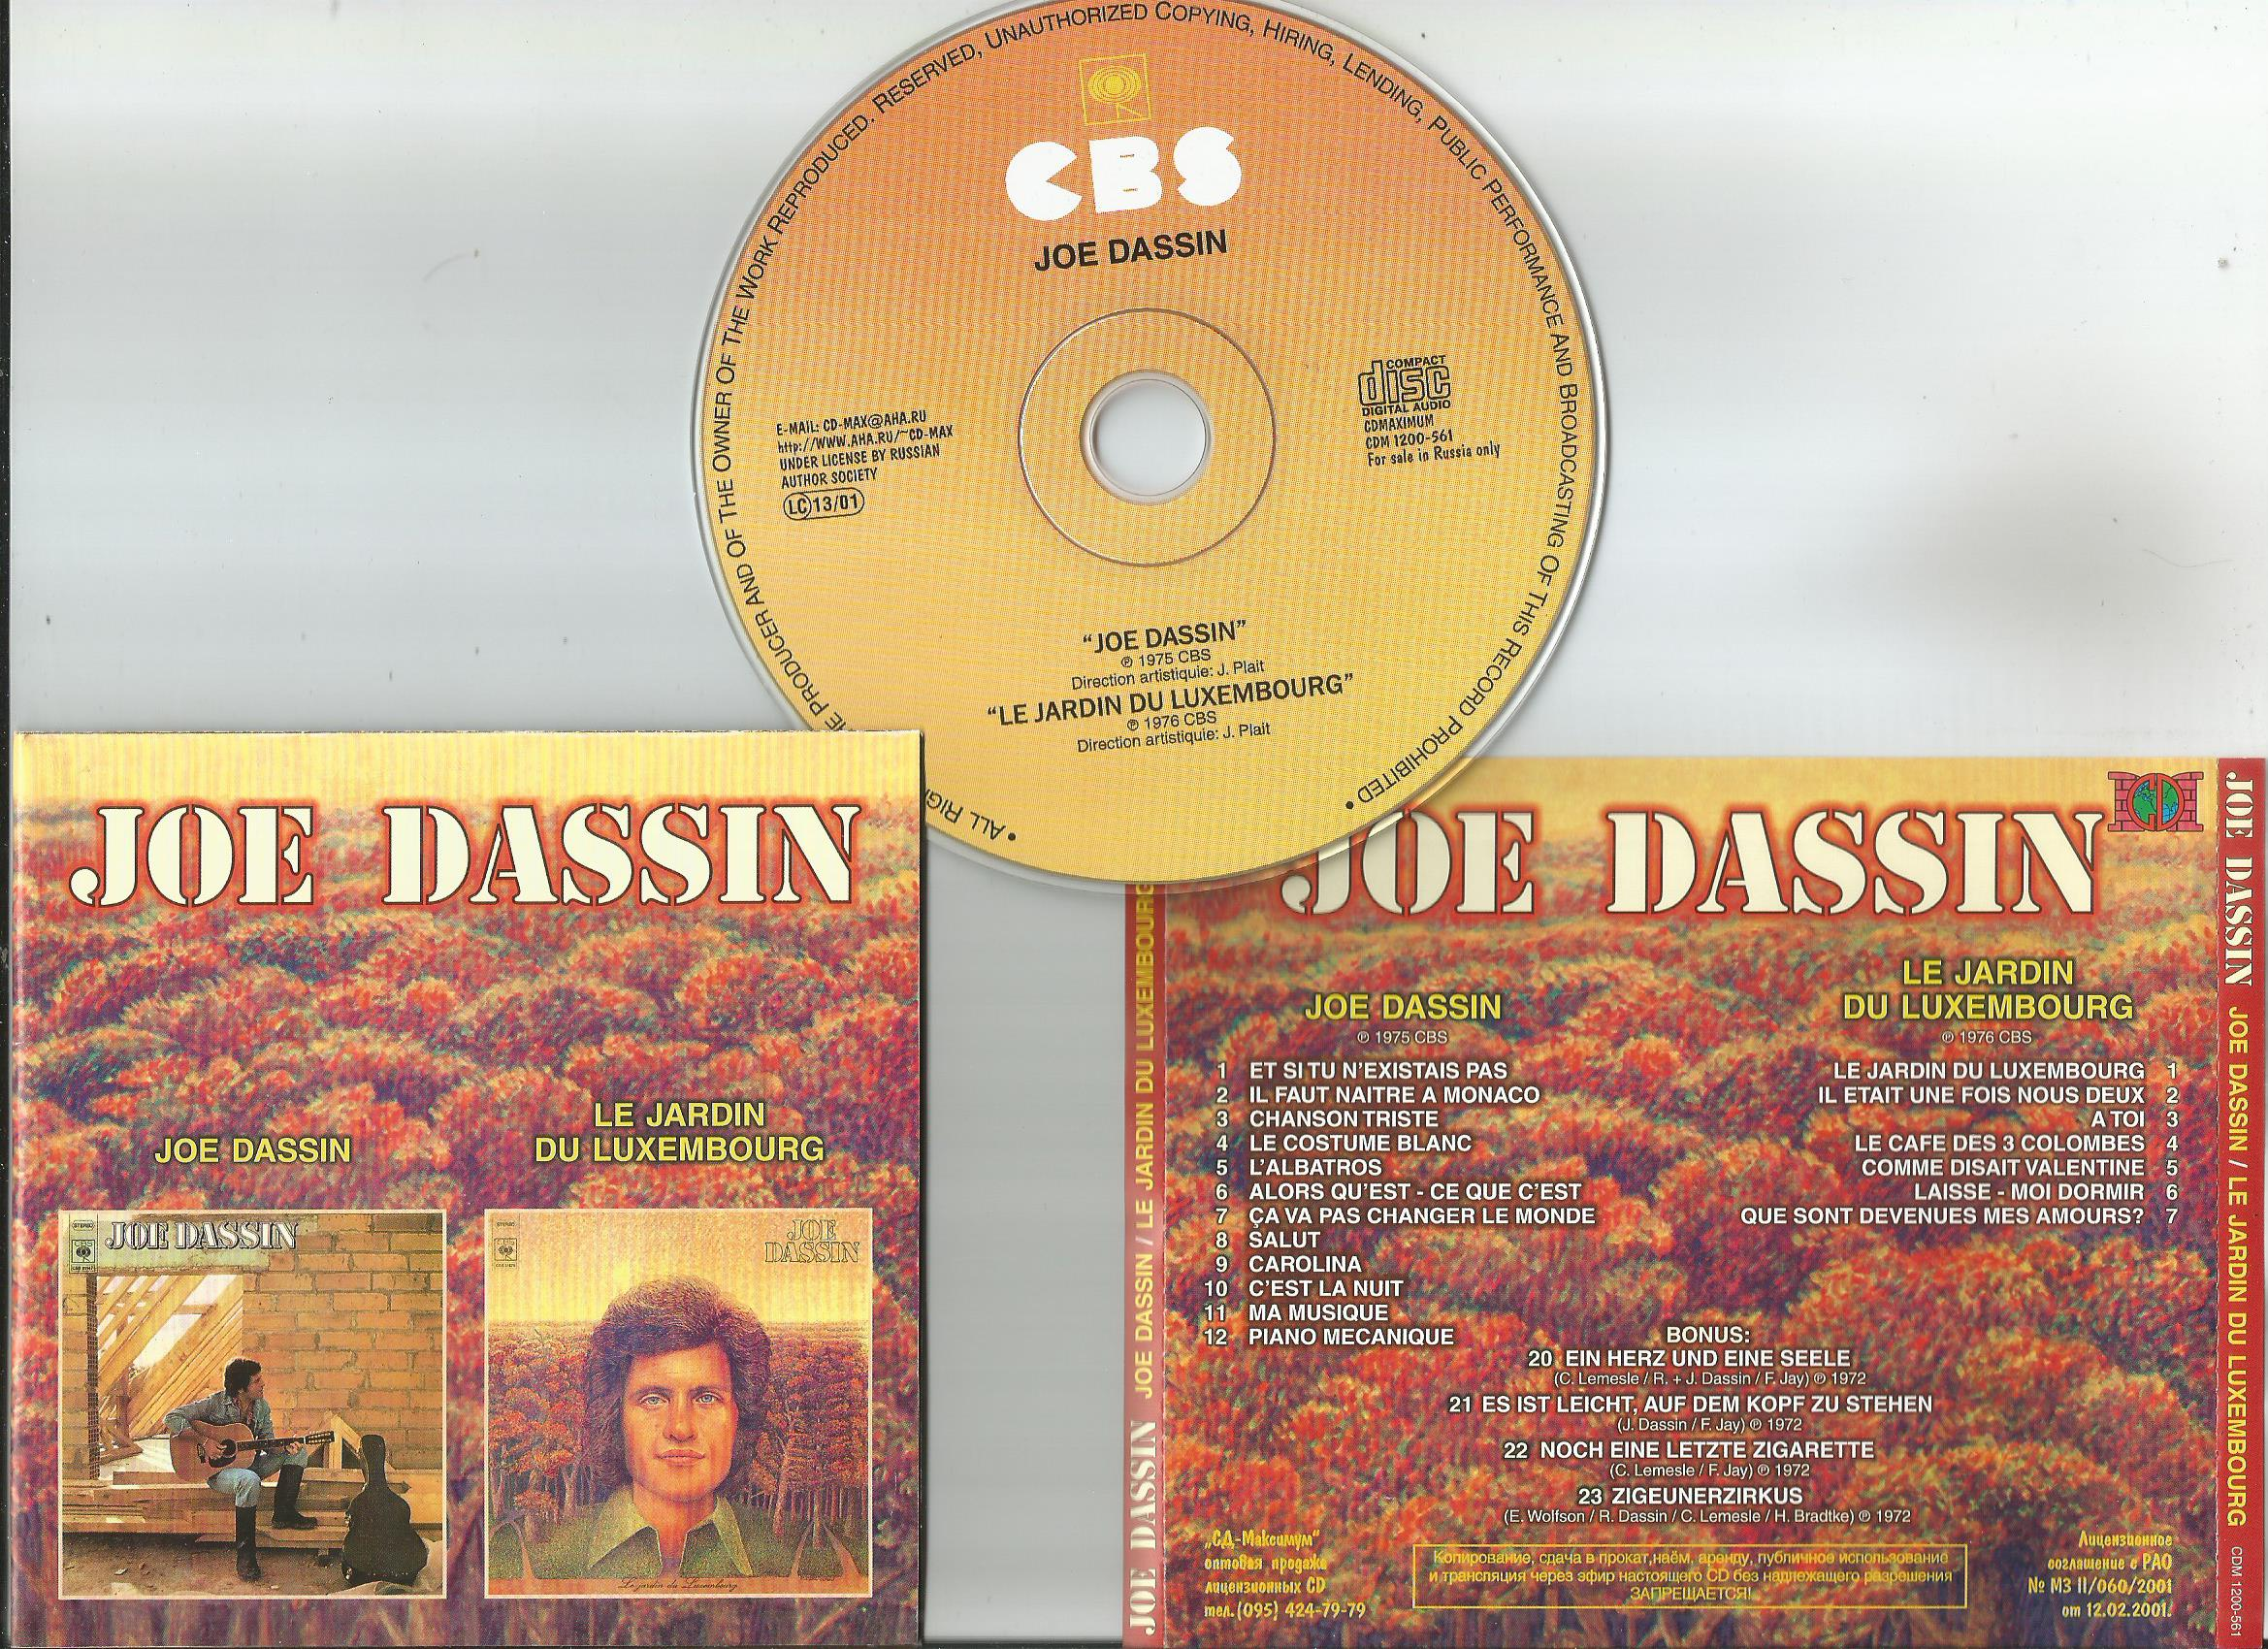 dassin, joe joe dassin/ le jardin du luxemburg + 4bonus tracks (all in 1cd)